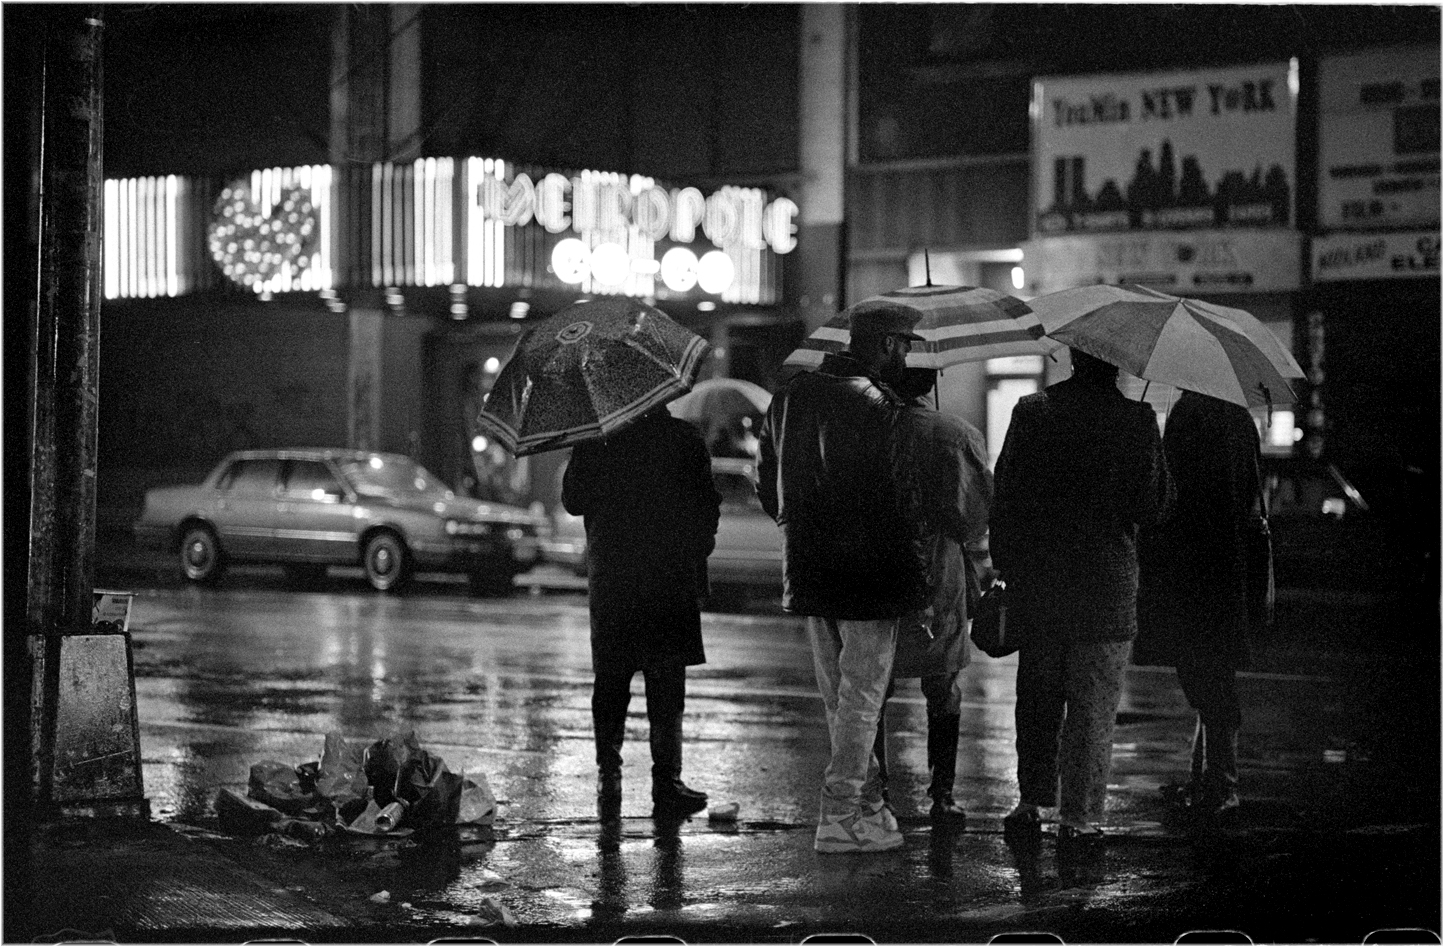 TimesSq-Metropole@Night-1989 copy